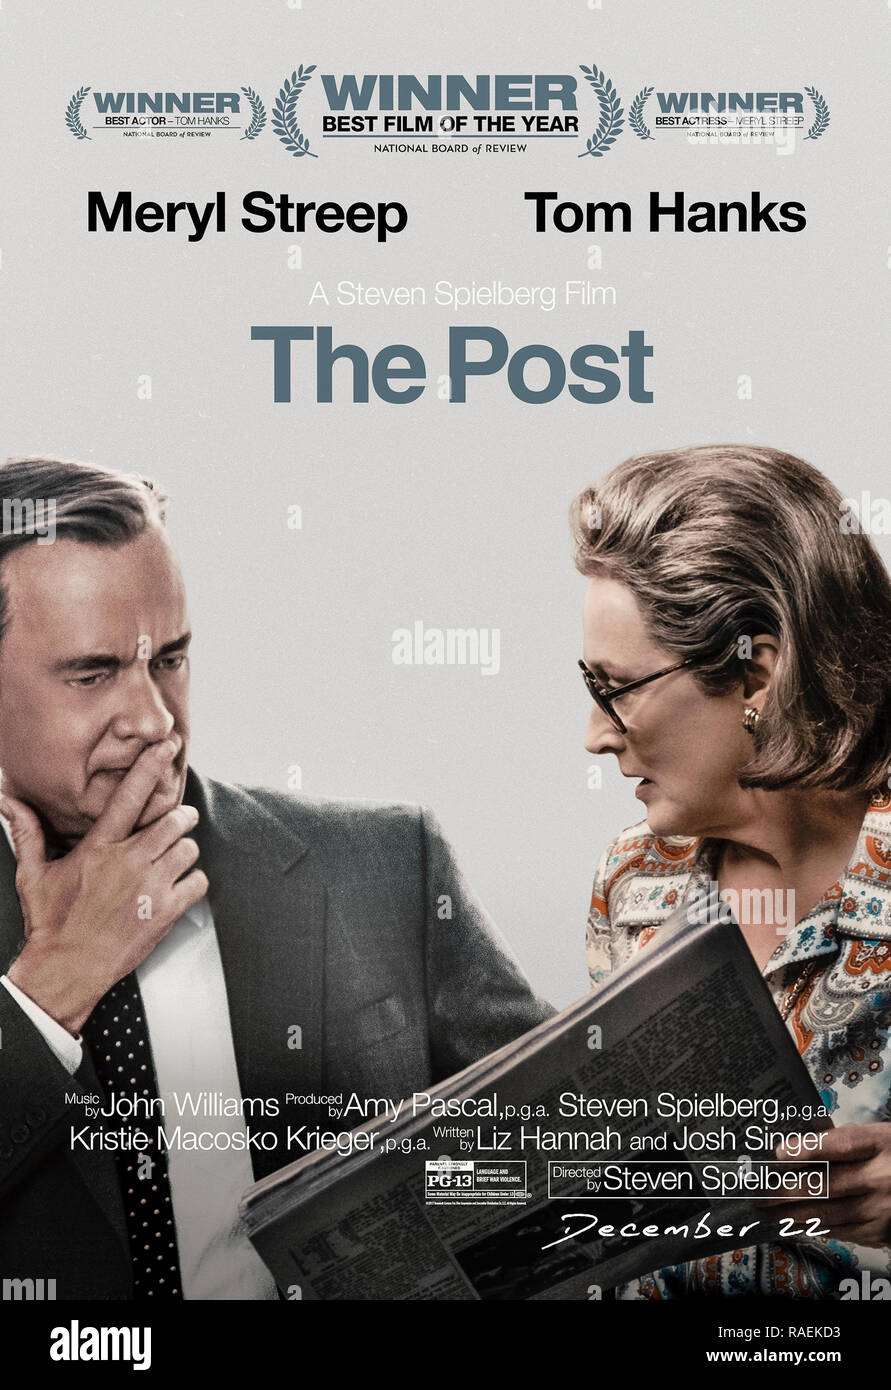 The Post (2017) directed by Steven Spielberg and starring Meryl Streep, Tom Hanks, Sarah Paulson and Matthew Rhys. The true story about Katharine Graham, publisher of The Washington Post, and the newspaper's fight to publish the Pentagon Papers about the US  political and military leaked by Daniel Ellsberg in 1971. - Stock Image